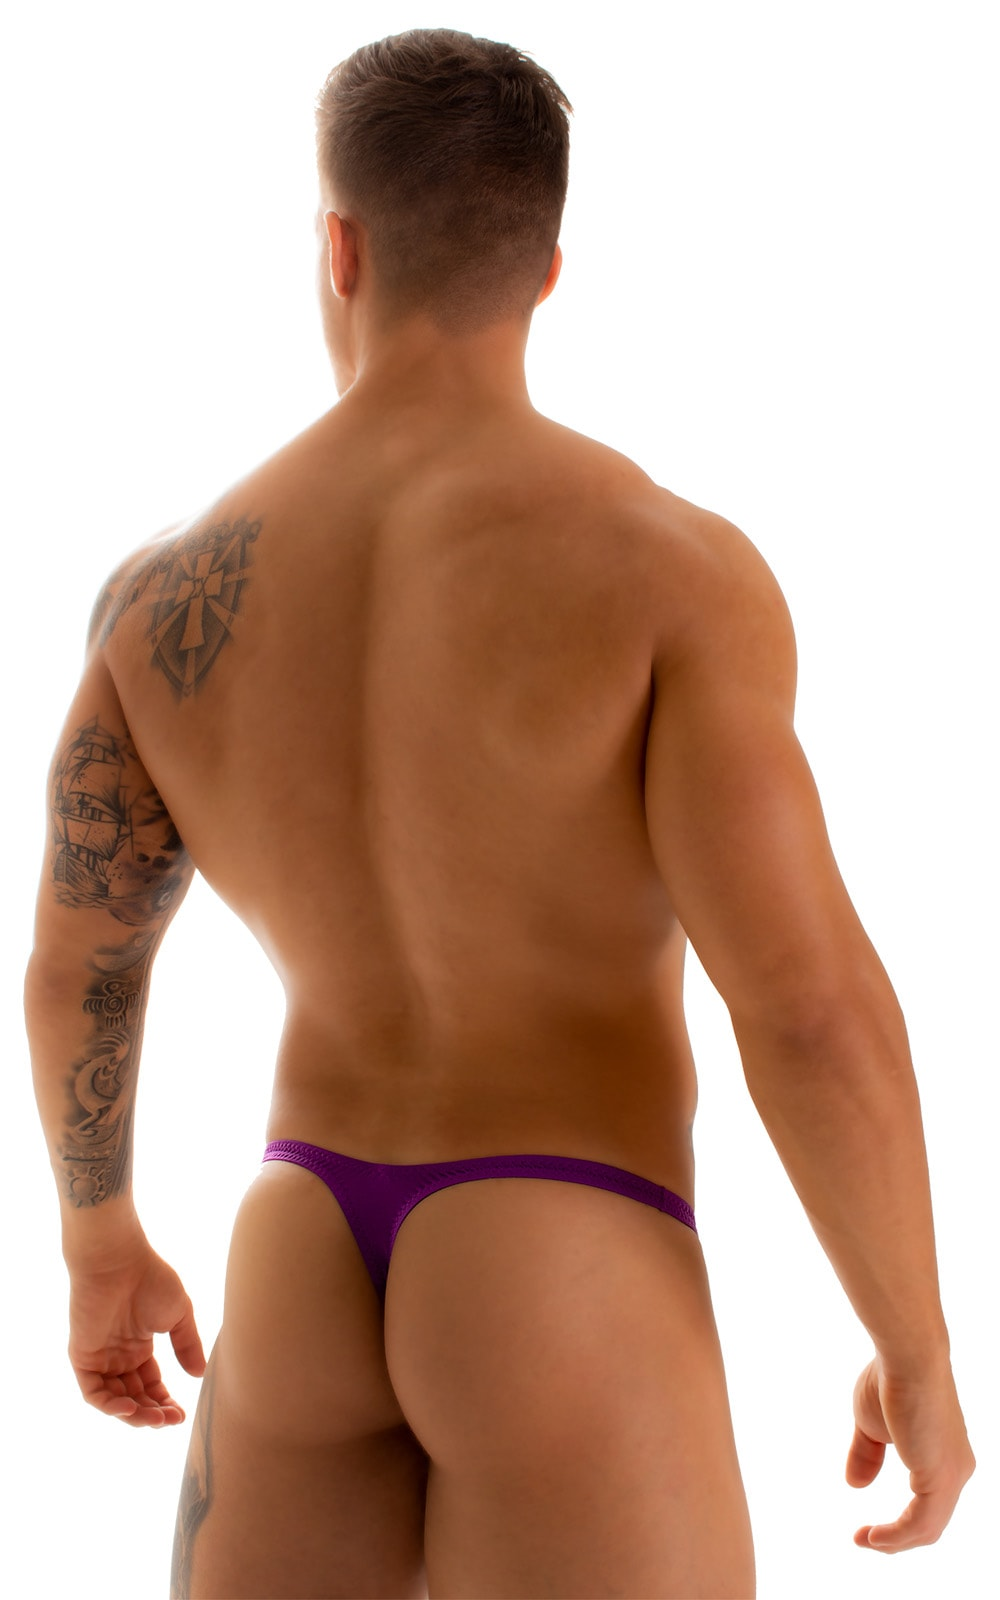 Stuffit Pouch Thong in ThinSKINZ Grape 2